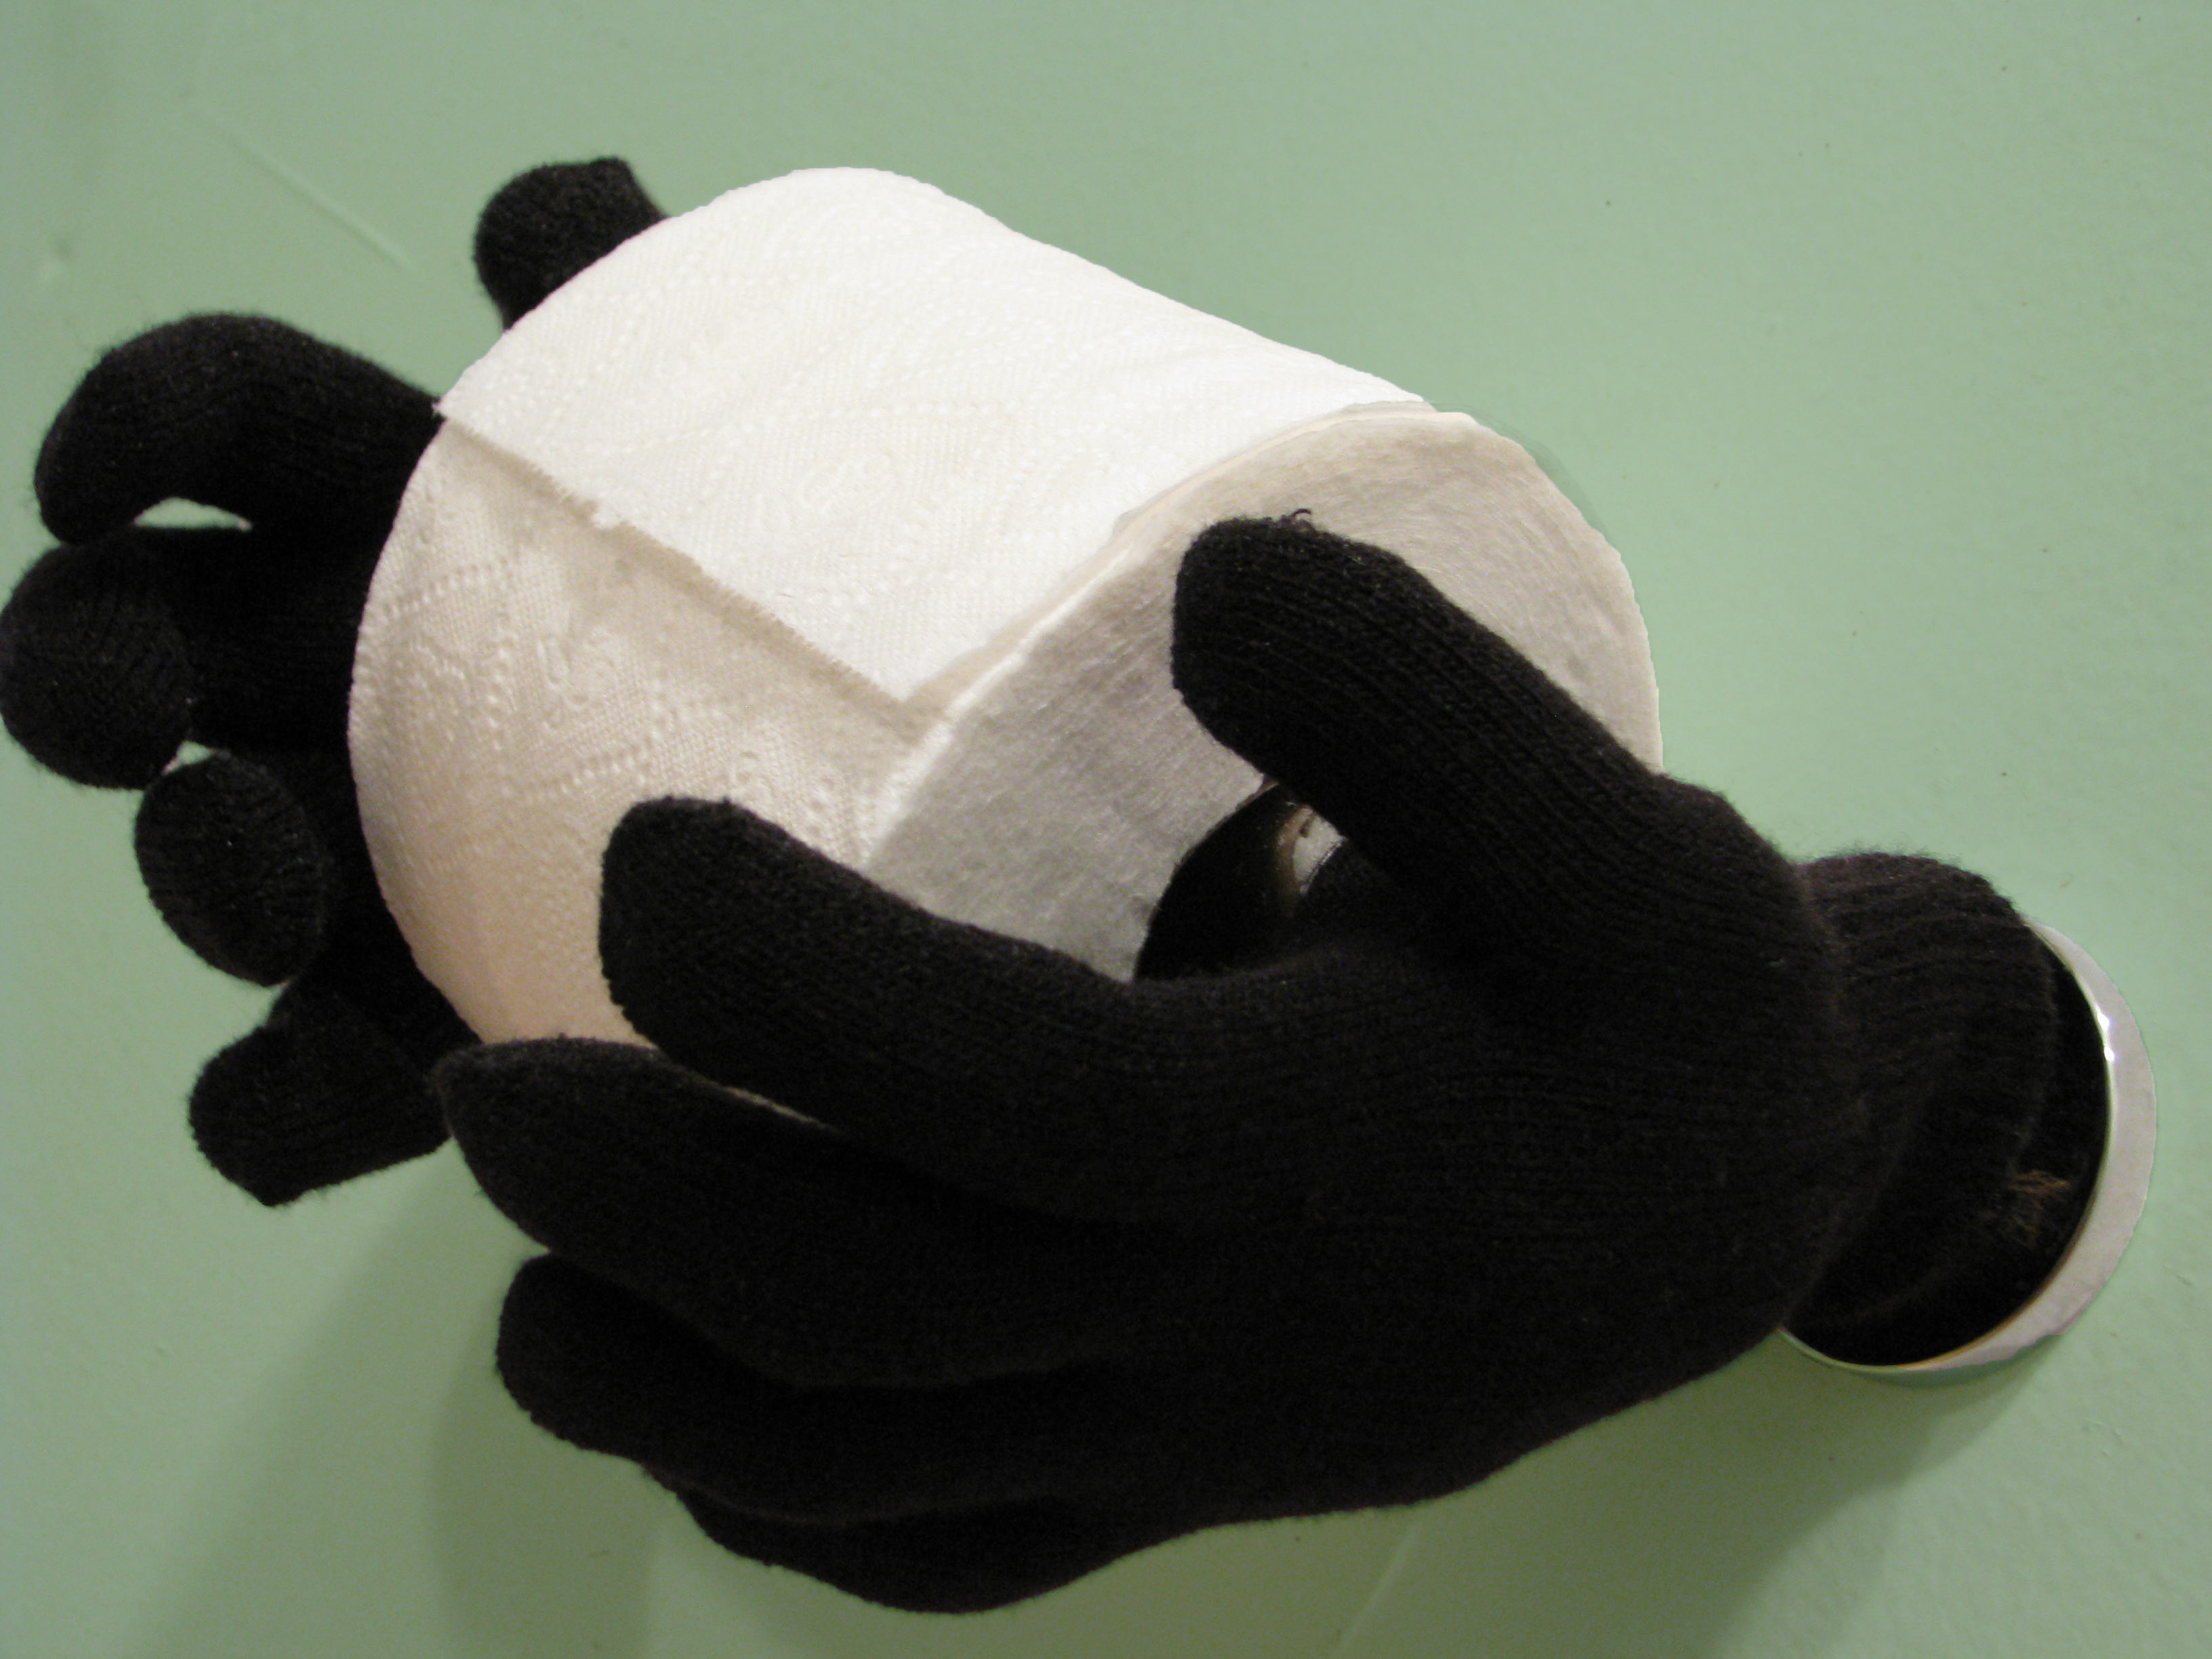 Magic Hands Toilet Paper Holder Style With A Smile